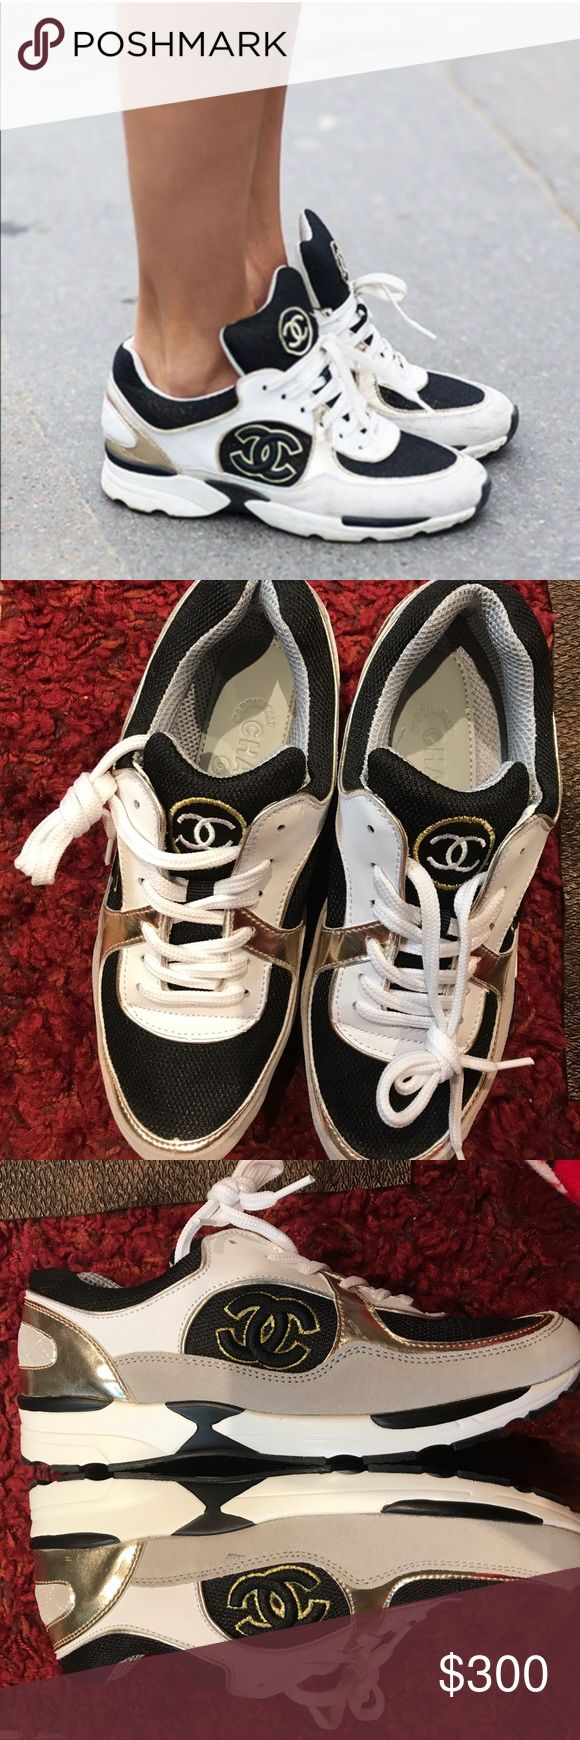 Chanel sneakers Brand new, never worn. True to size. Must have 💖 please be reasonable with the pricing. Thank you CHANEL Shoes Sneakers